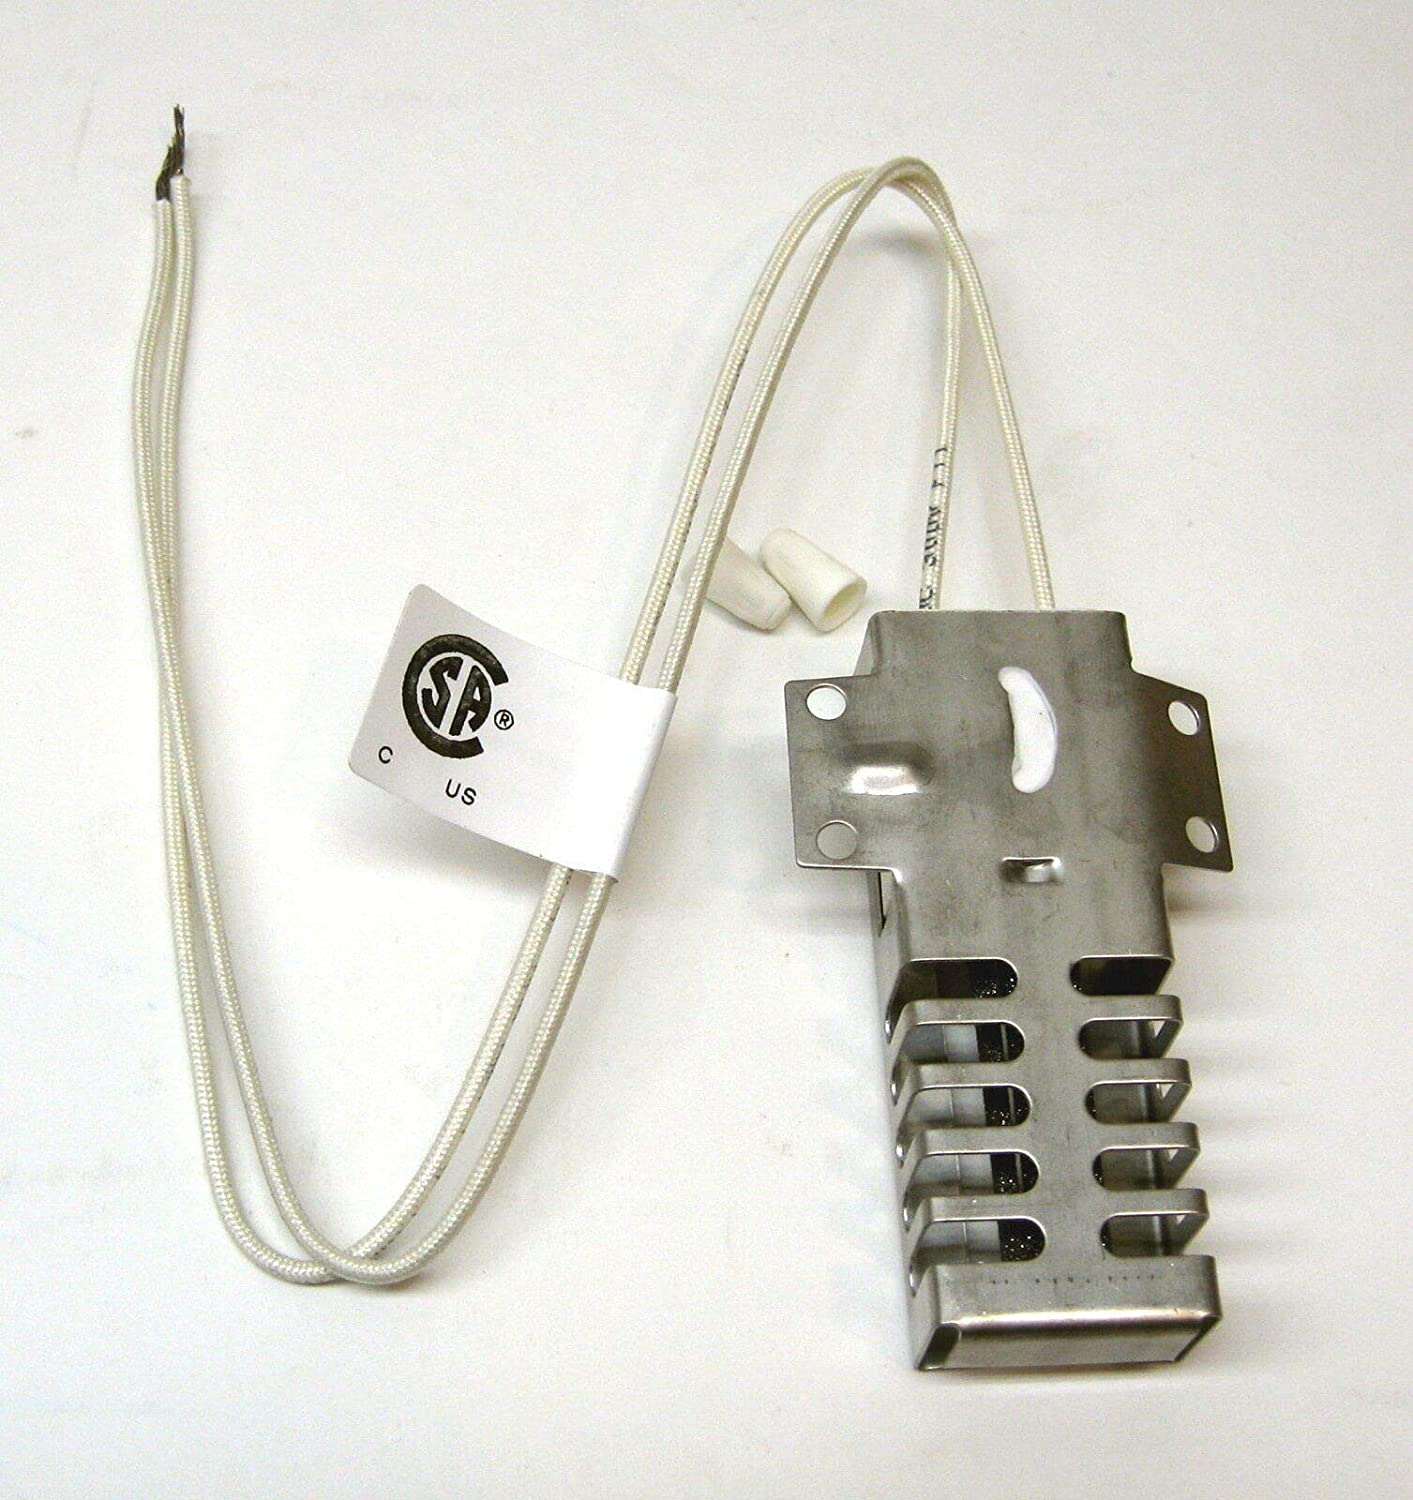 New GE Replacement WB2X9998 Oven Range Flat Igniter